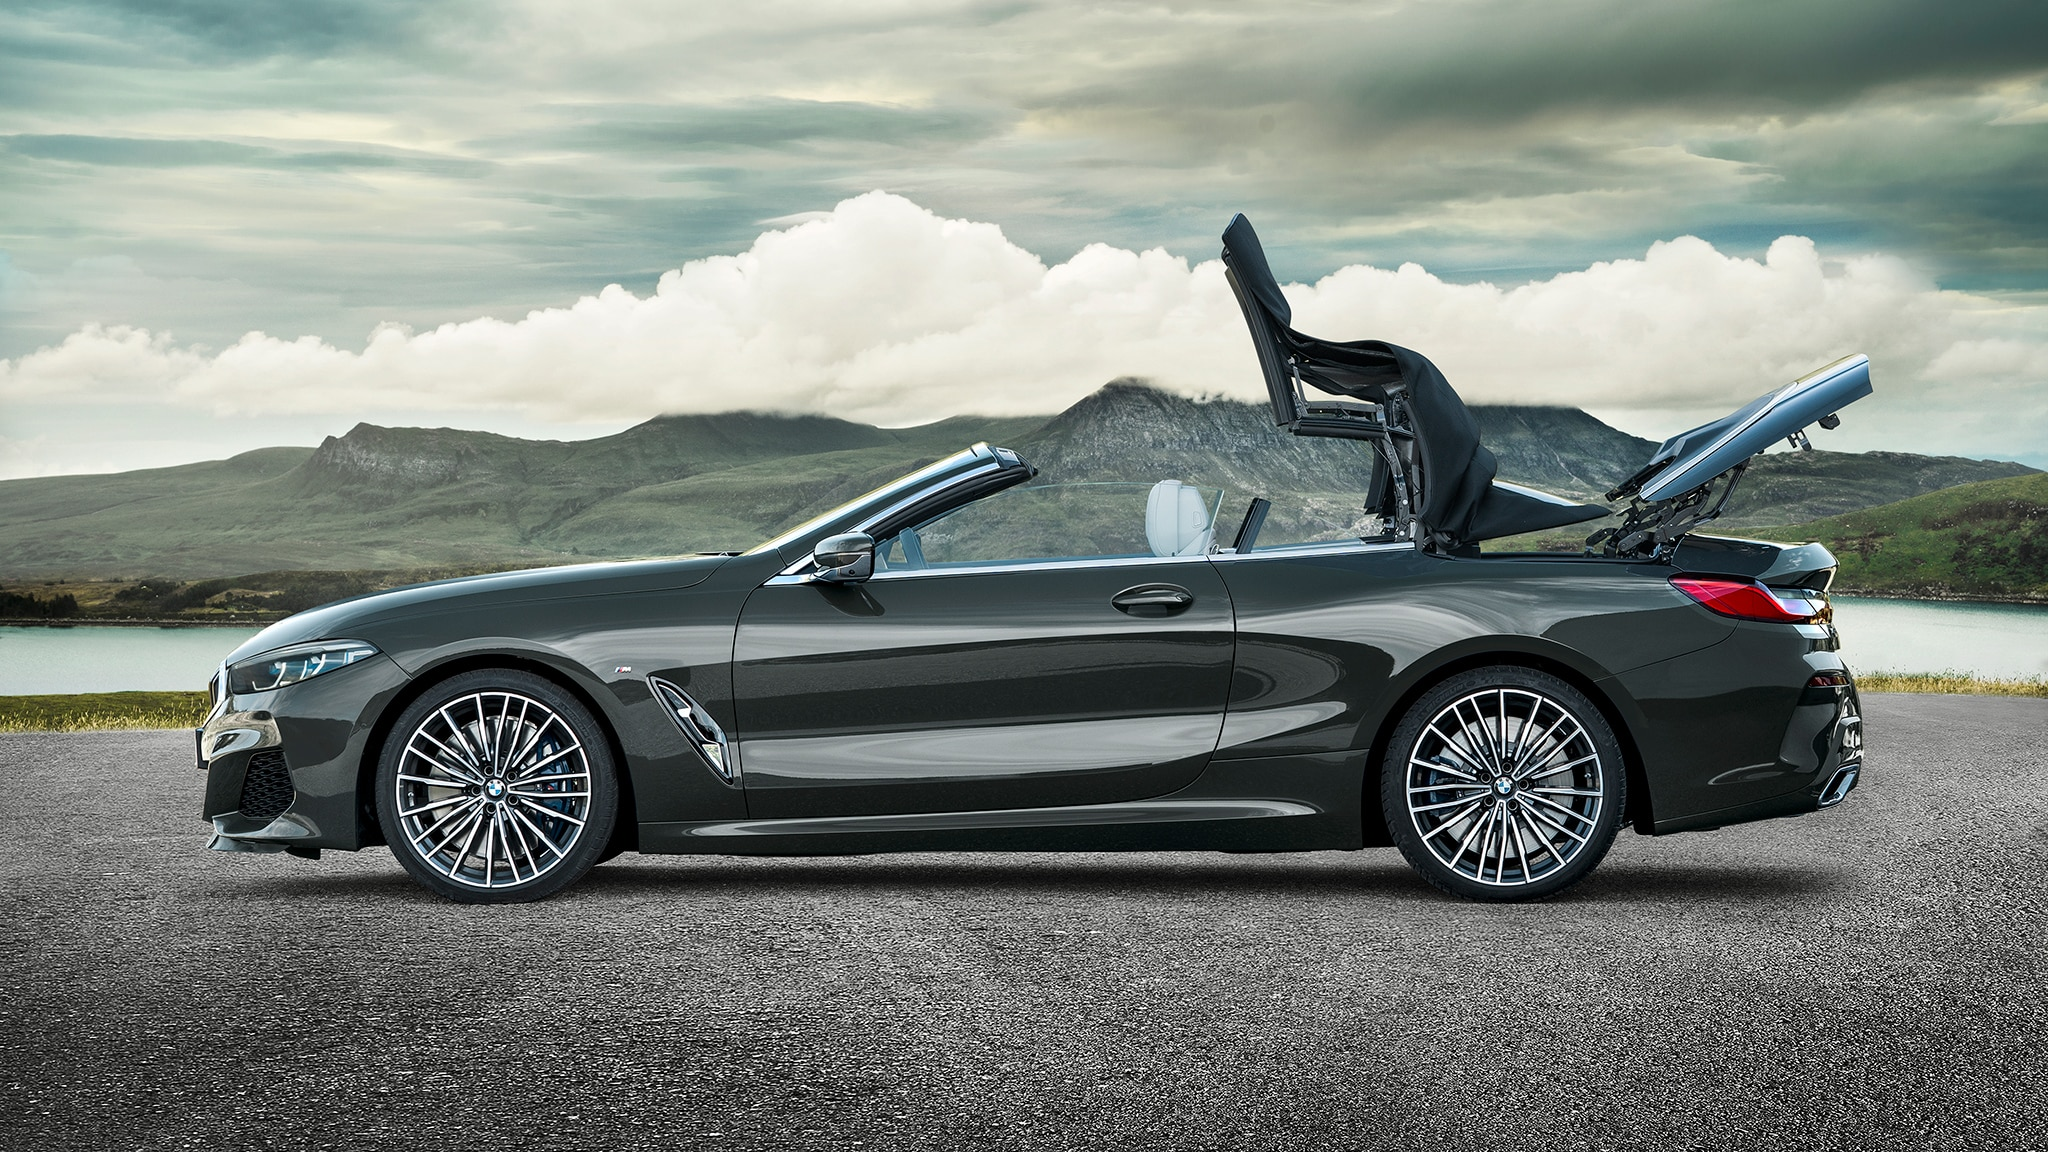 2019 BMW M850i Convertible Top Going Down 3